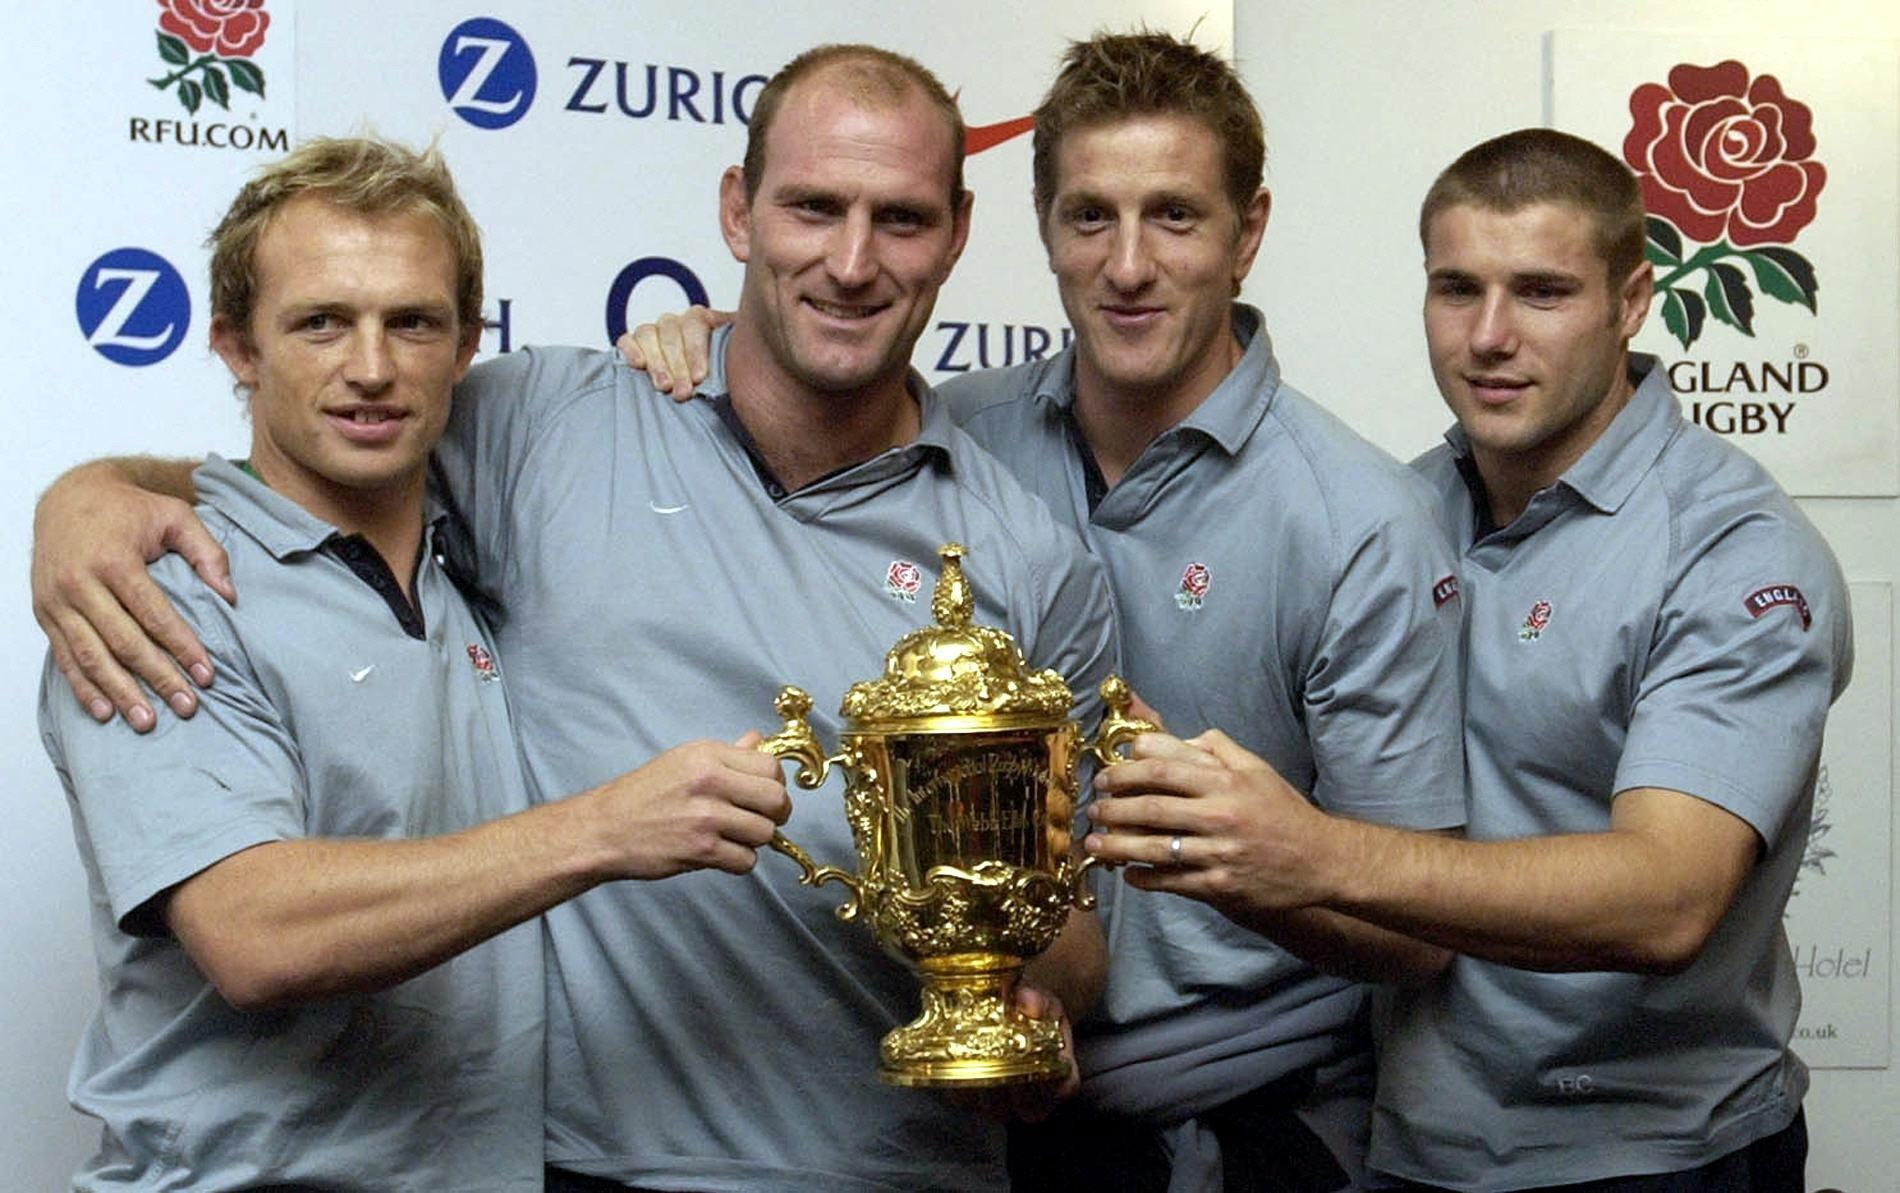 The pain seemed to be worth it after picking up the Web Ellis World Cup in 2003 (far right)